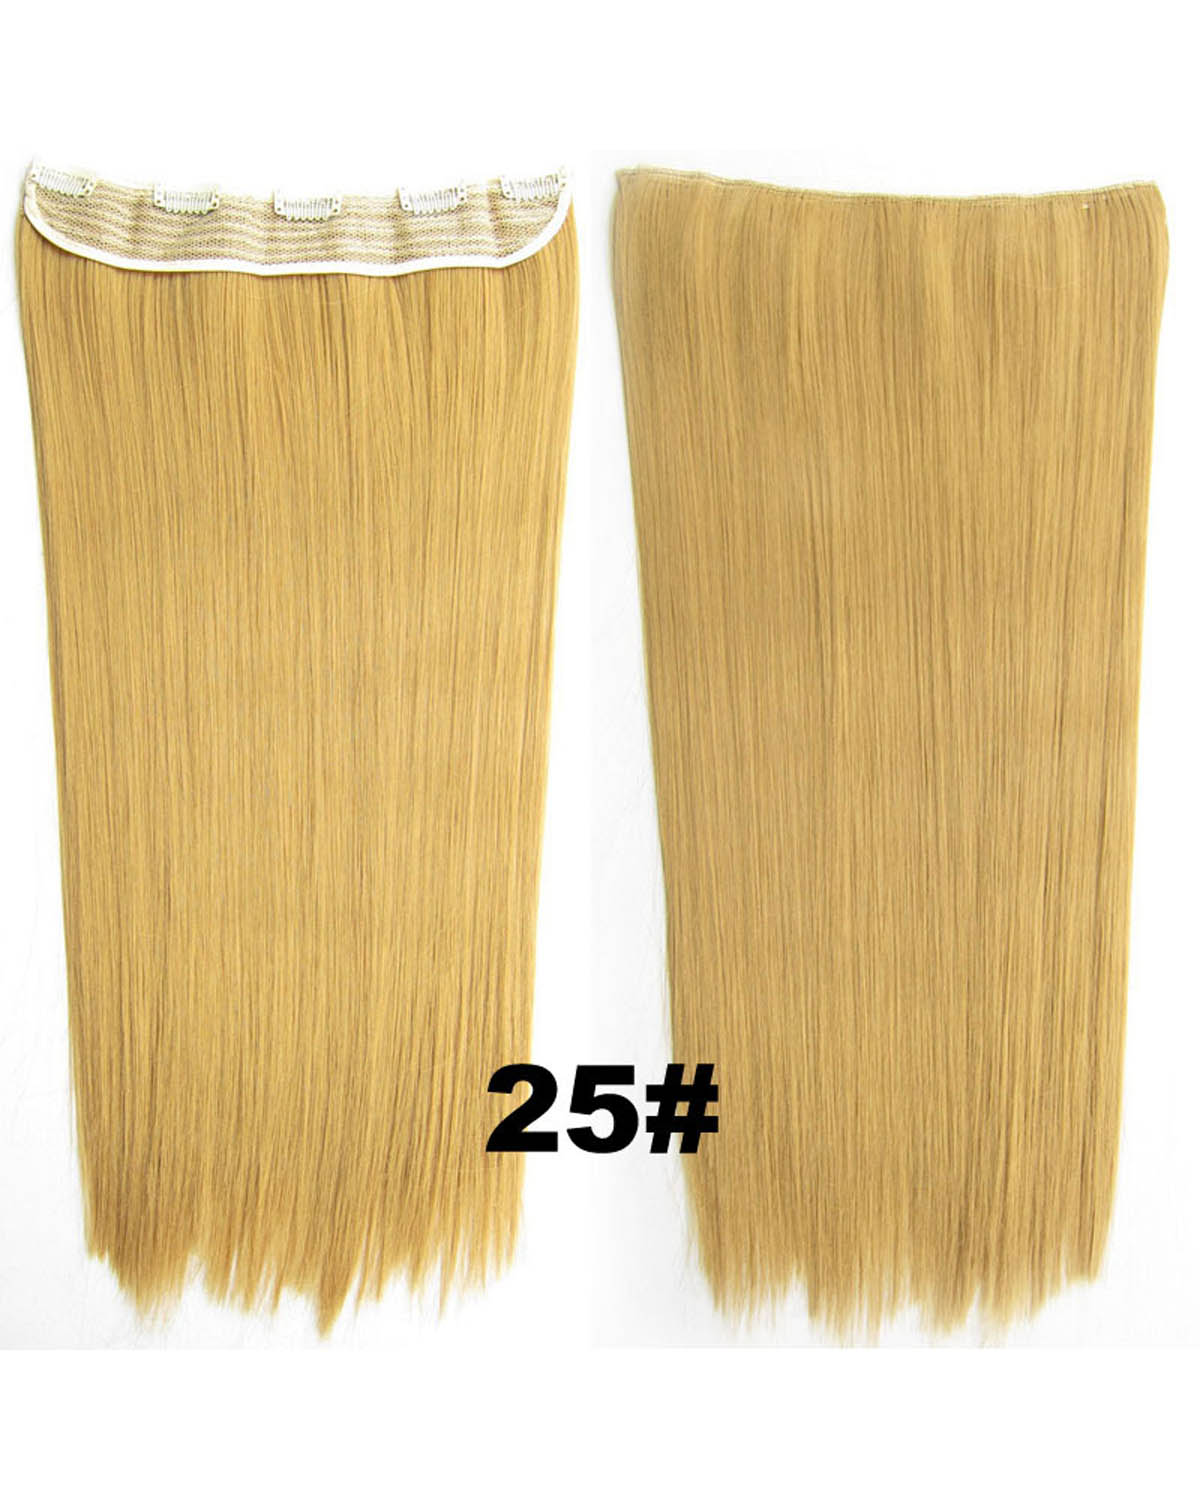 24 Inch Female Fine Long and Straight Hot-Sale One Piece 5 Clips Clip in Synthetic Hair Extension 25#